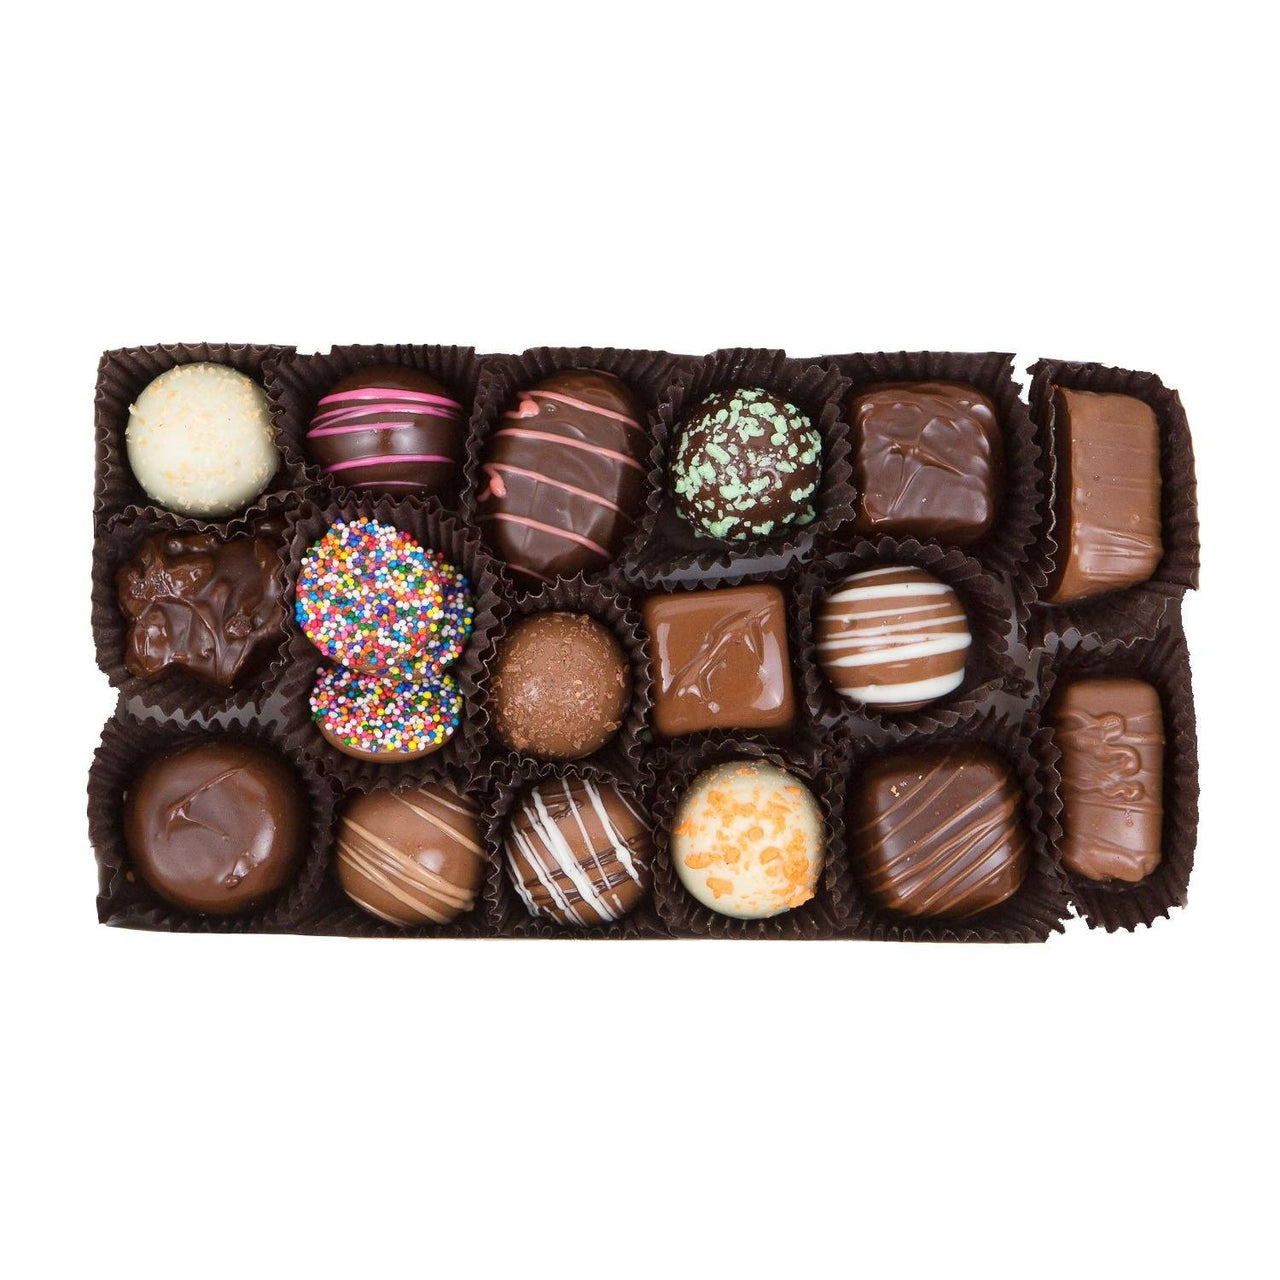 Secret Santa List - Chocolate Assortment Gift Box - Jackie's Chocolate (4336367534195)